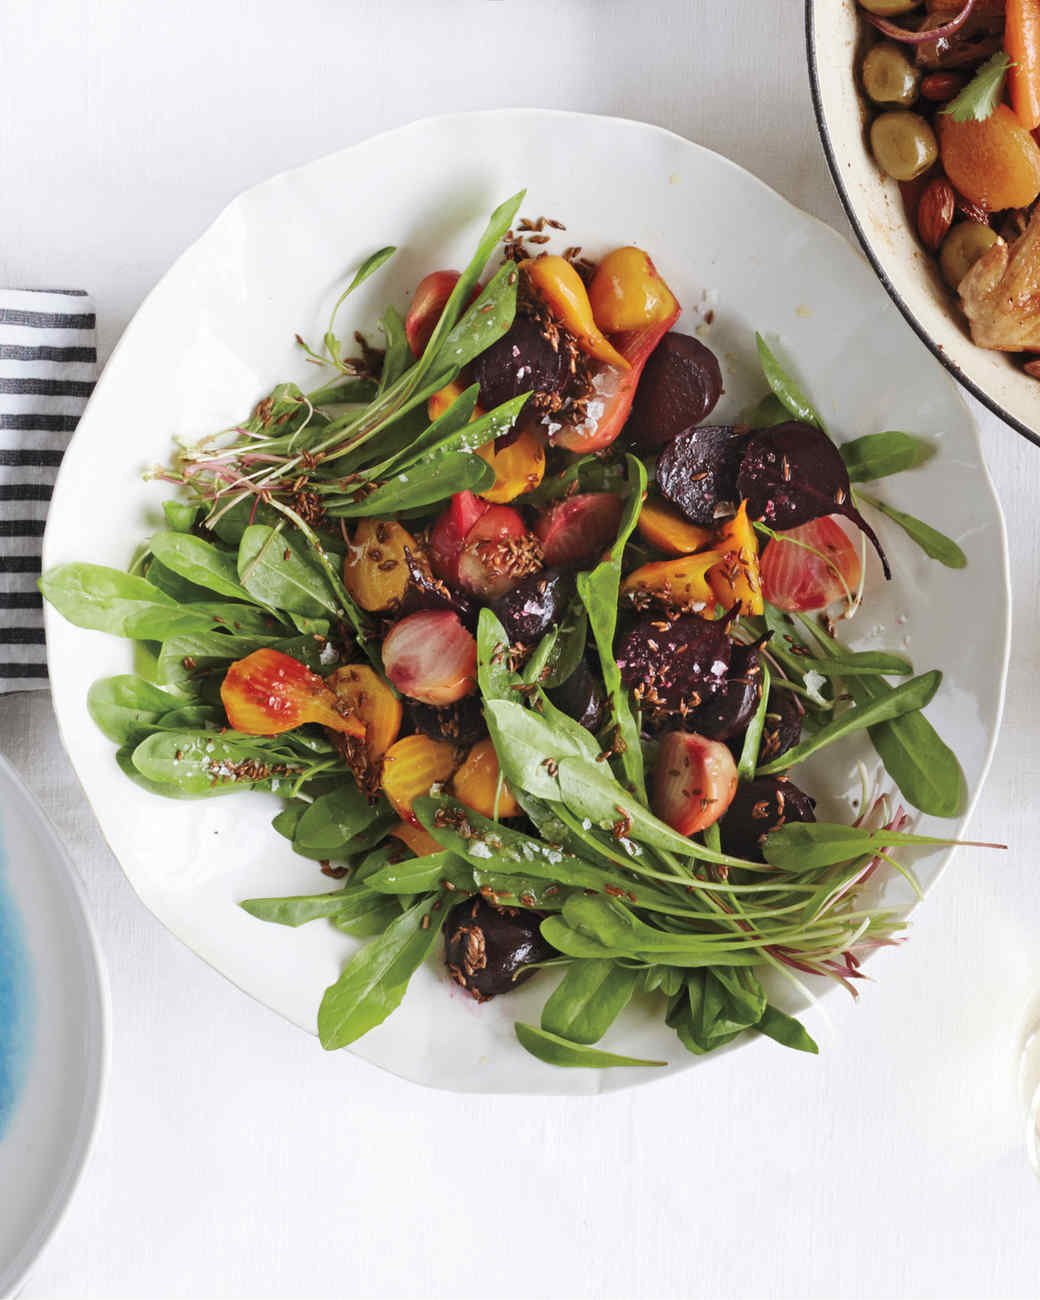 Roasted Beet and Dandelion Greens Salad